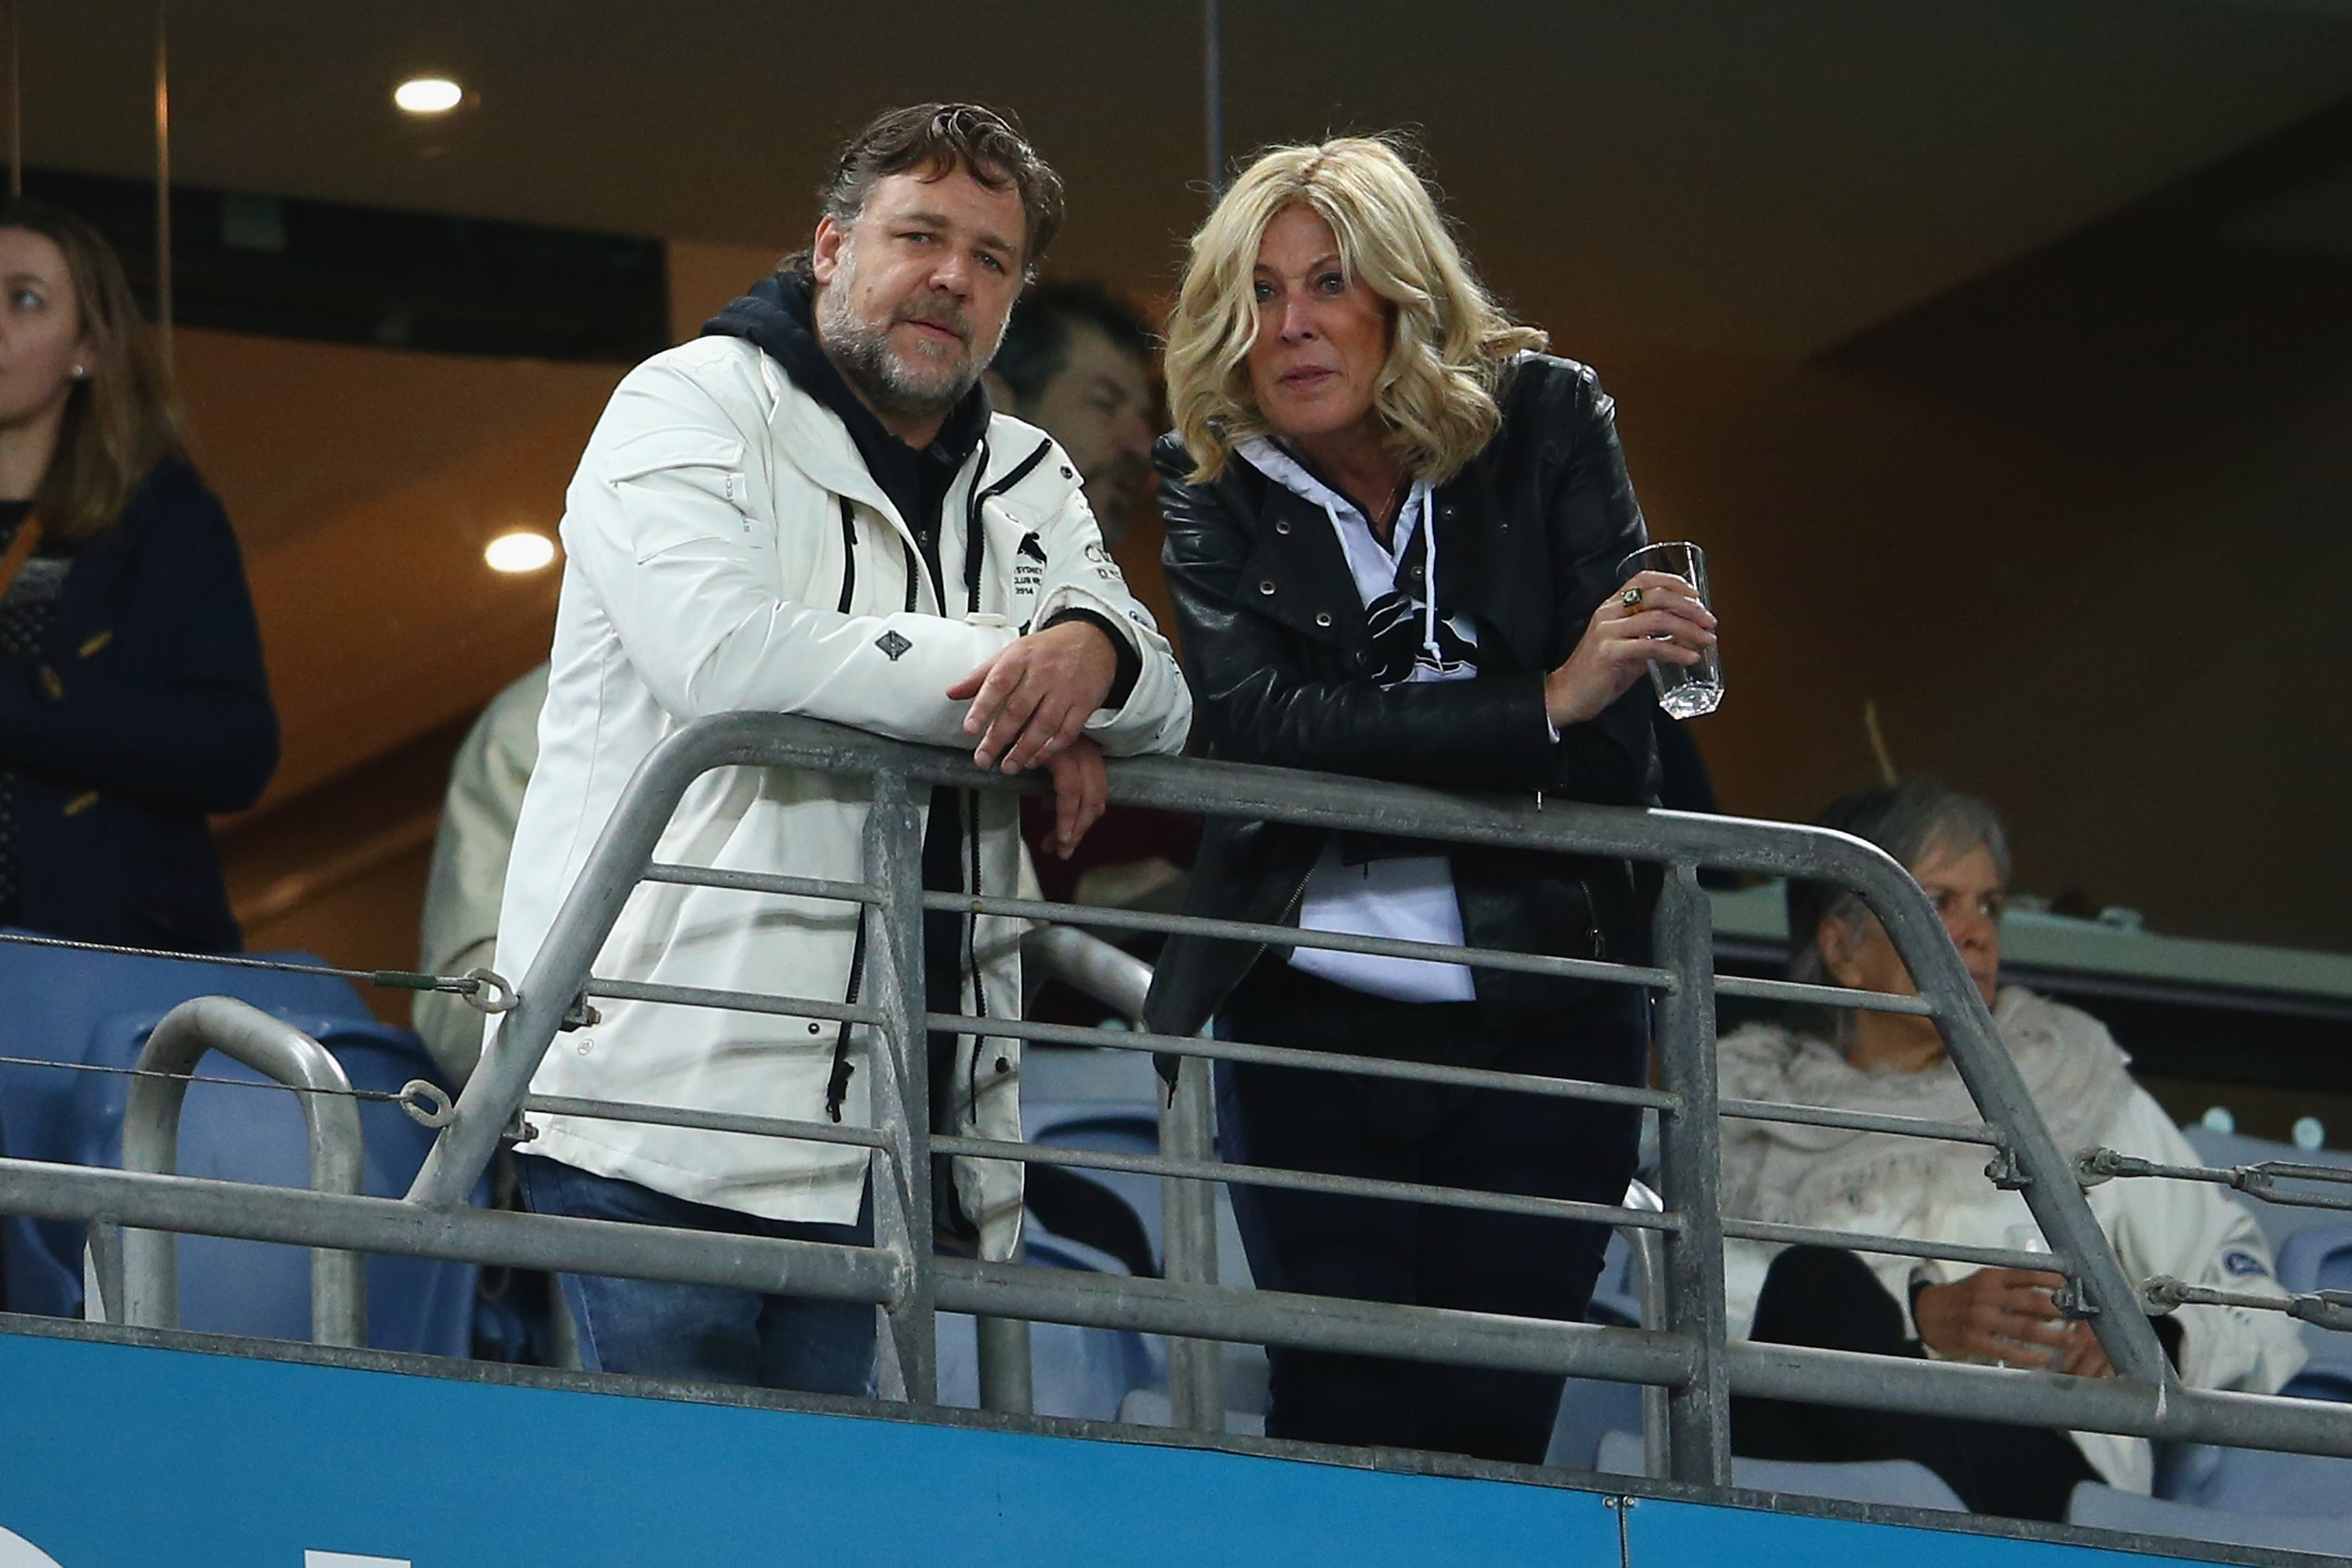 gde dating russell crowe julie burgess partnervermittlung  Burgess family hits back at Russell Crowe dating rumours.